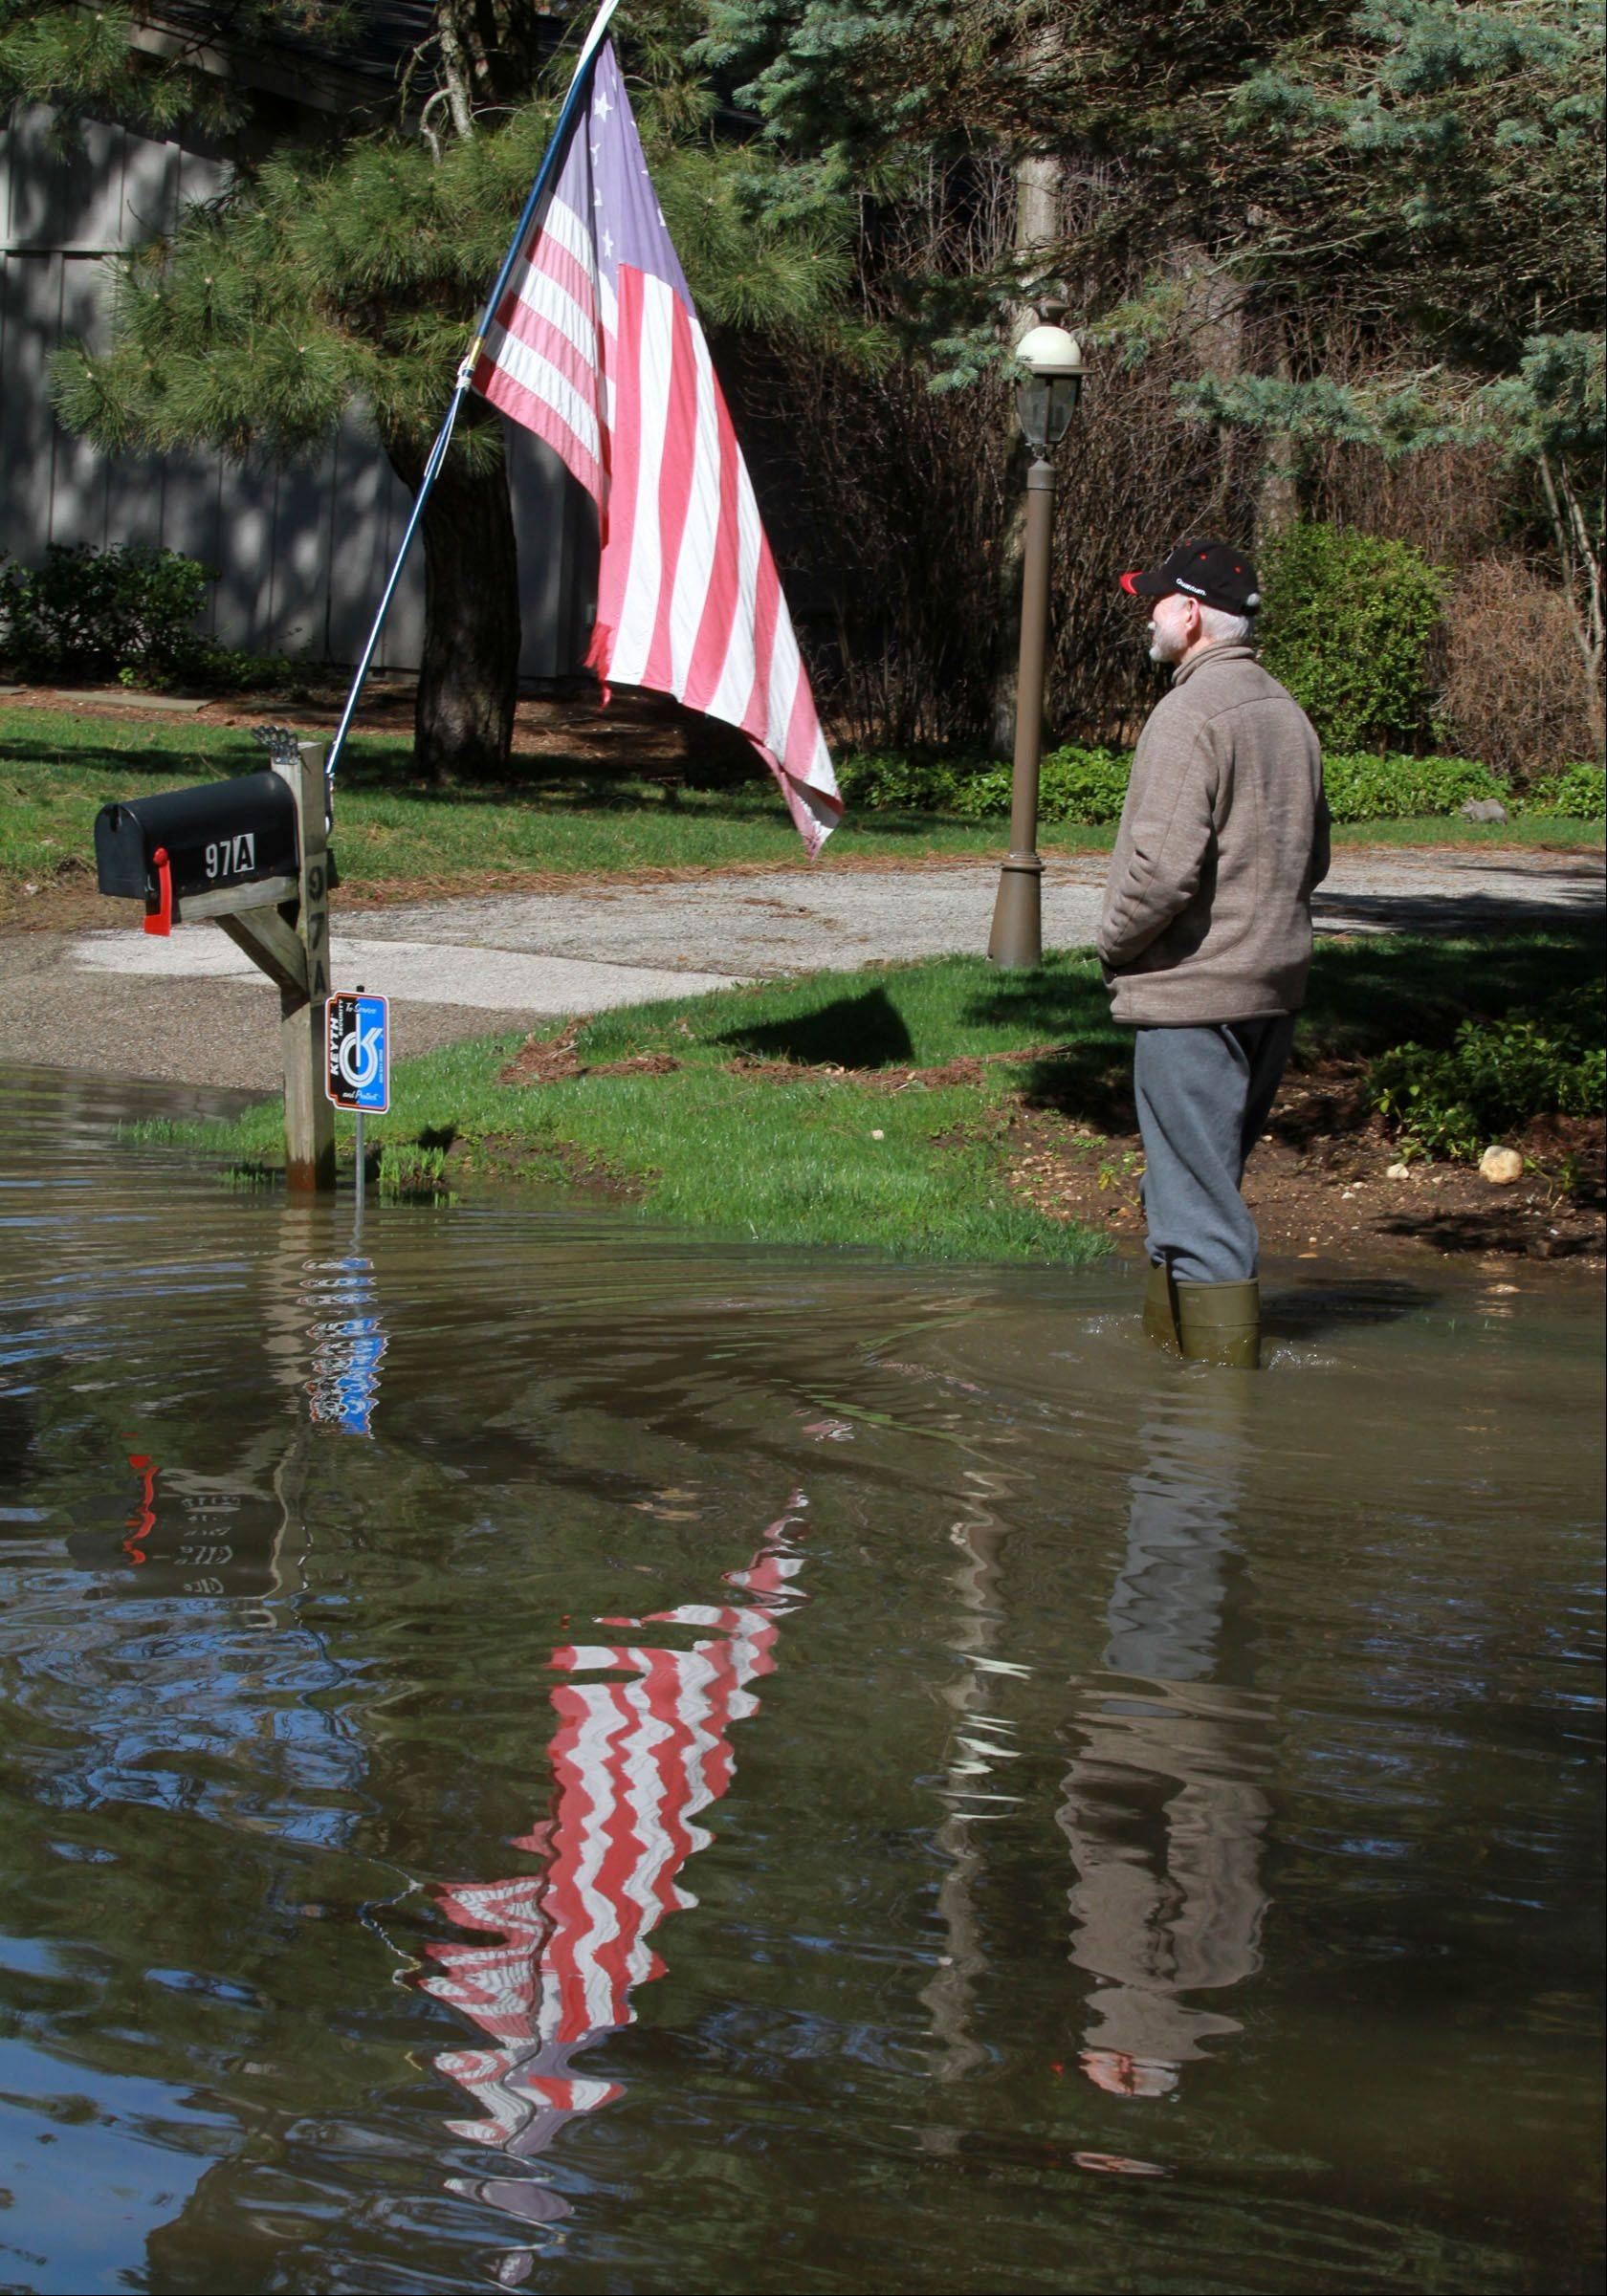 Rich Sanders walks back to his house on Lincolnshire Way in Lincolnshire after checking the water level at the end of the block and turning back on Saturday, April 20, 2013. Rich said his house did not get any water.